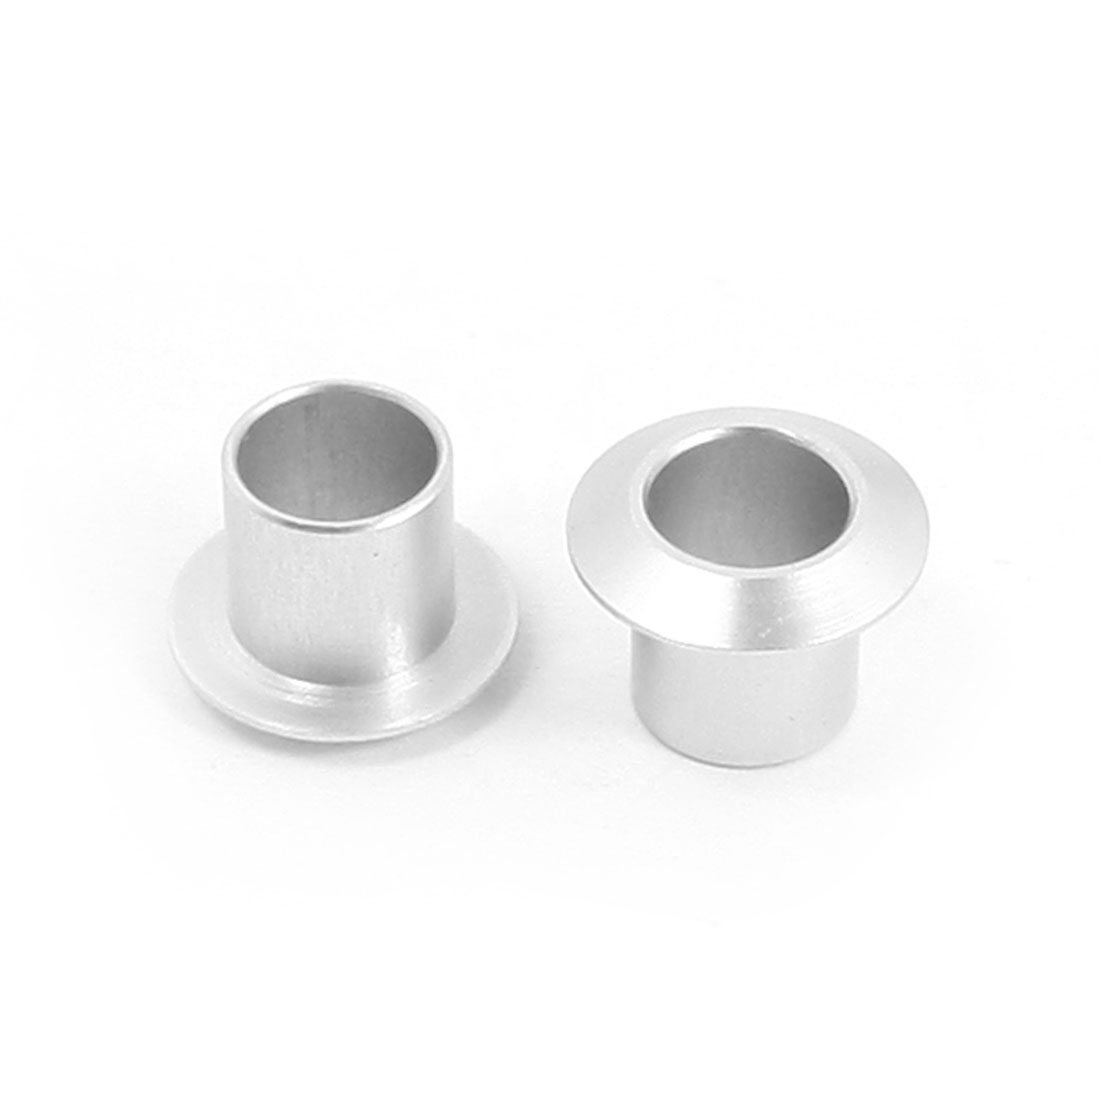 2Pcs 6mm Inner Dia 8mm x 11mm Aluminum Alloy Ring Sleeve Coupling for RC Boat Silicone Tube